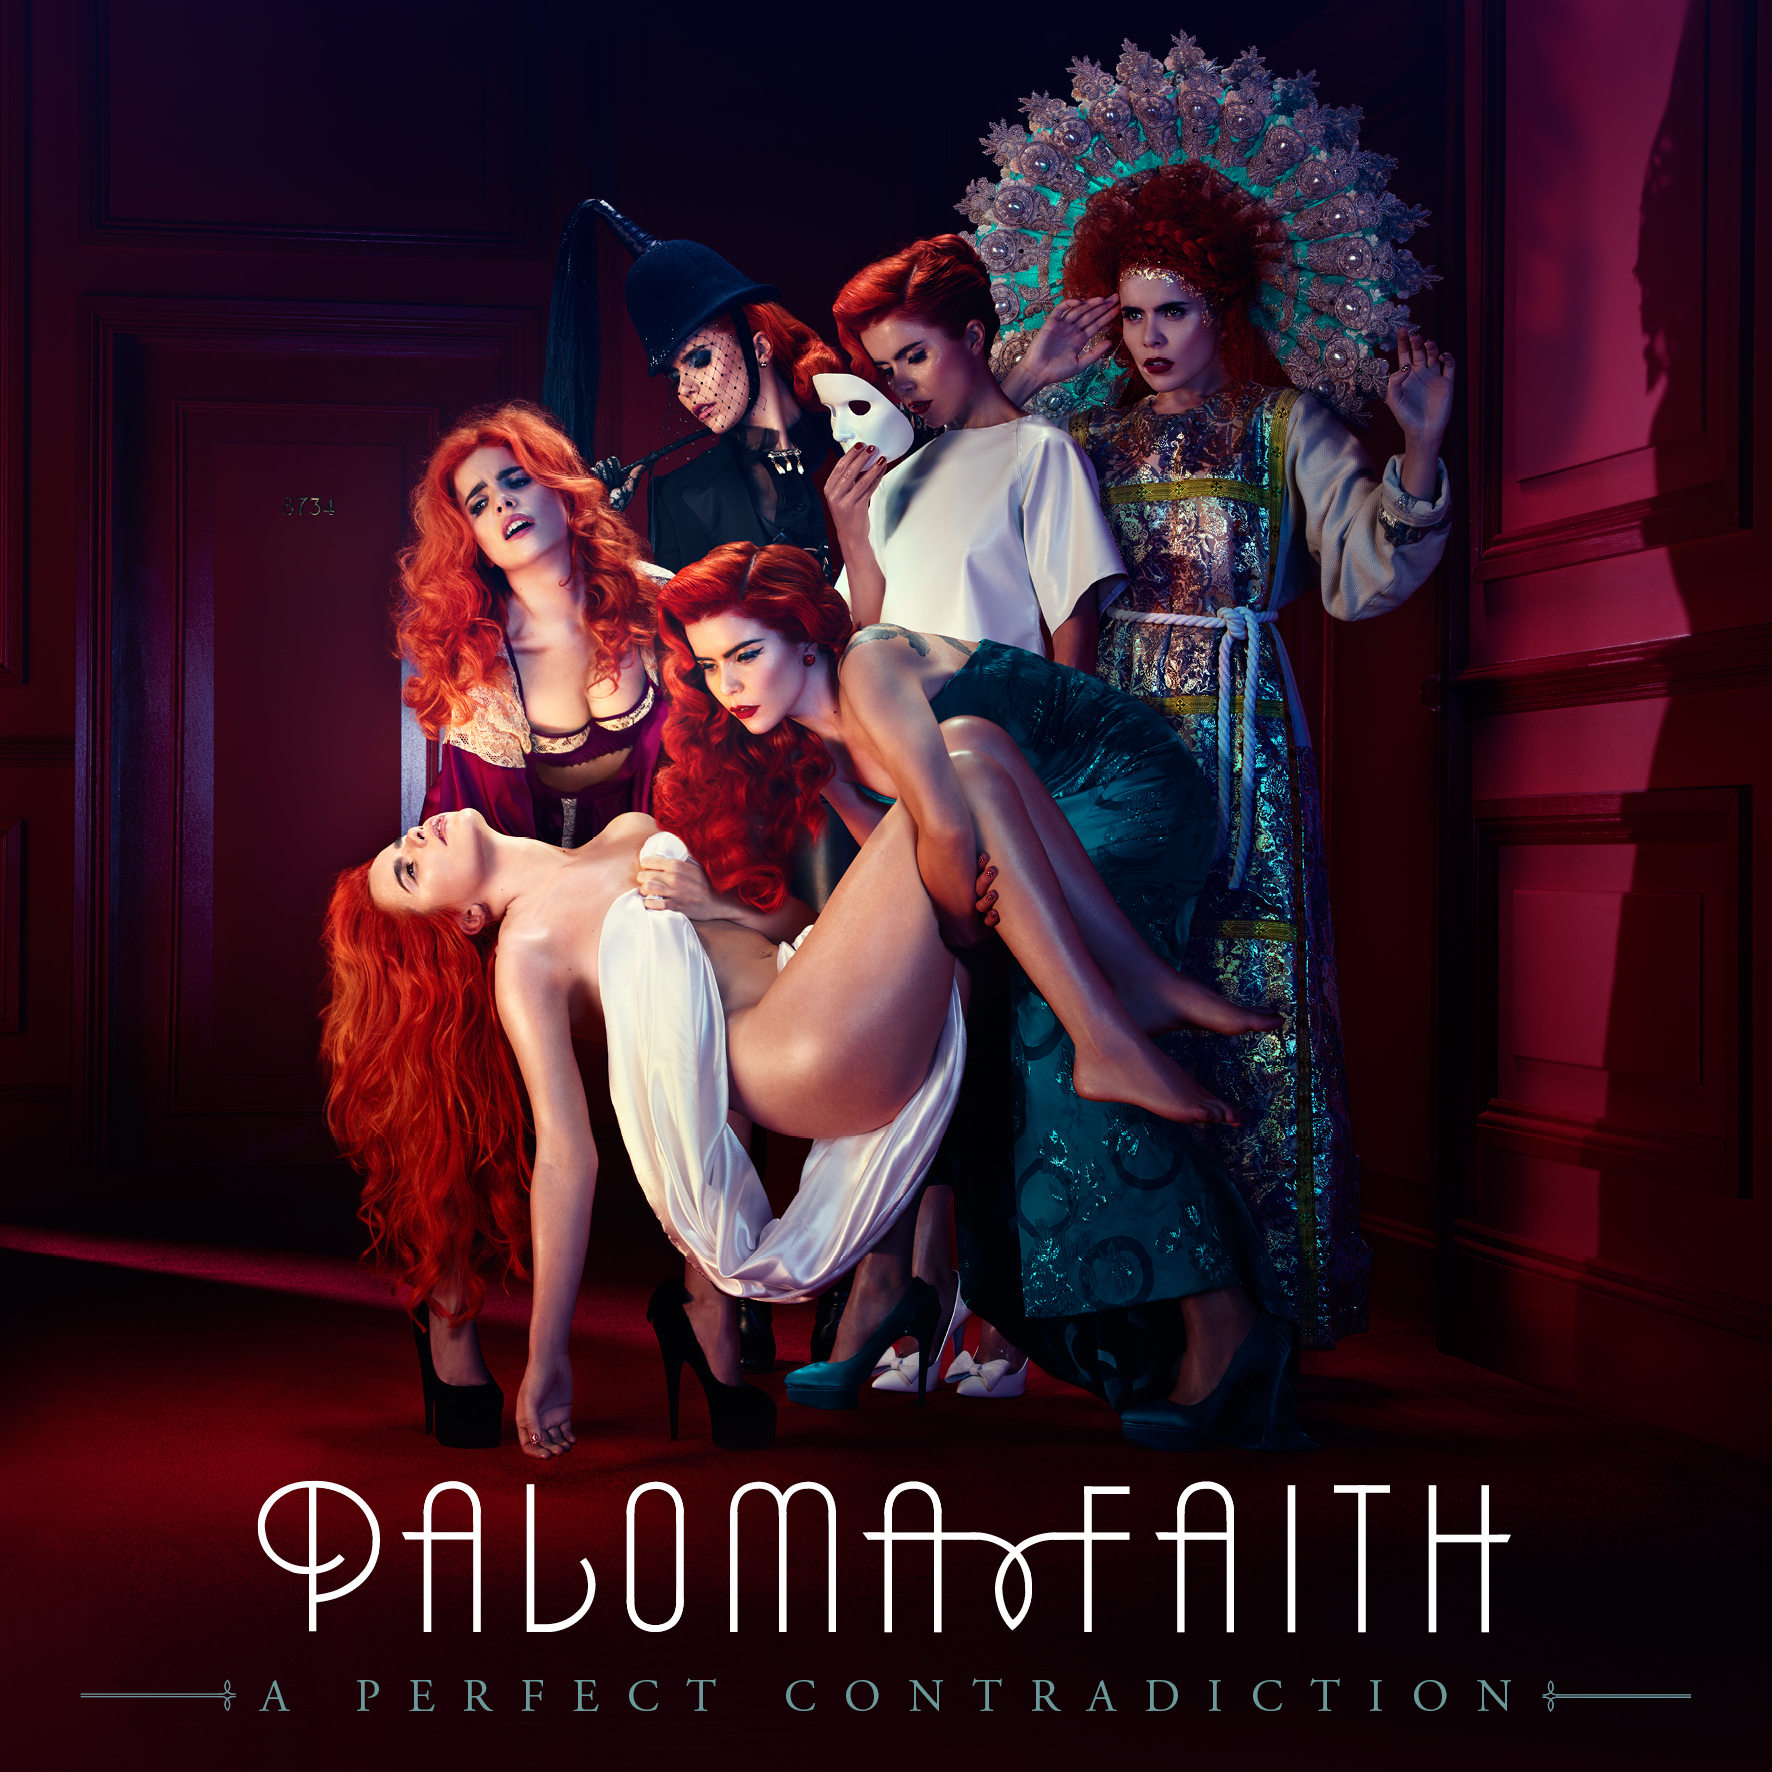 Enter To Win A Perfect Contradiction From Paloma Faith